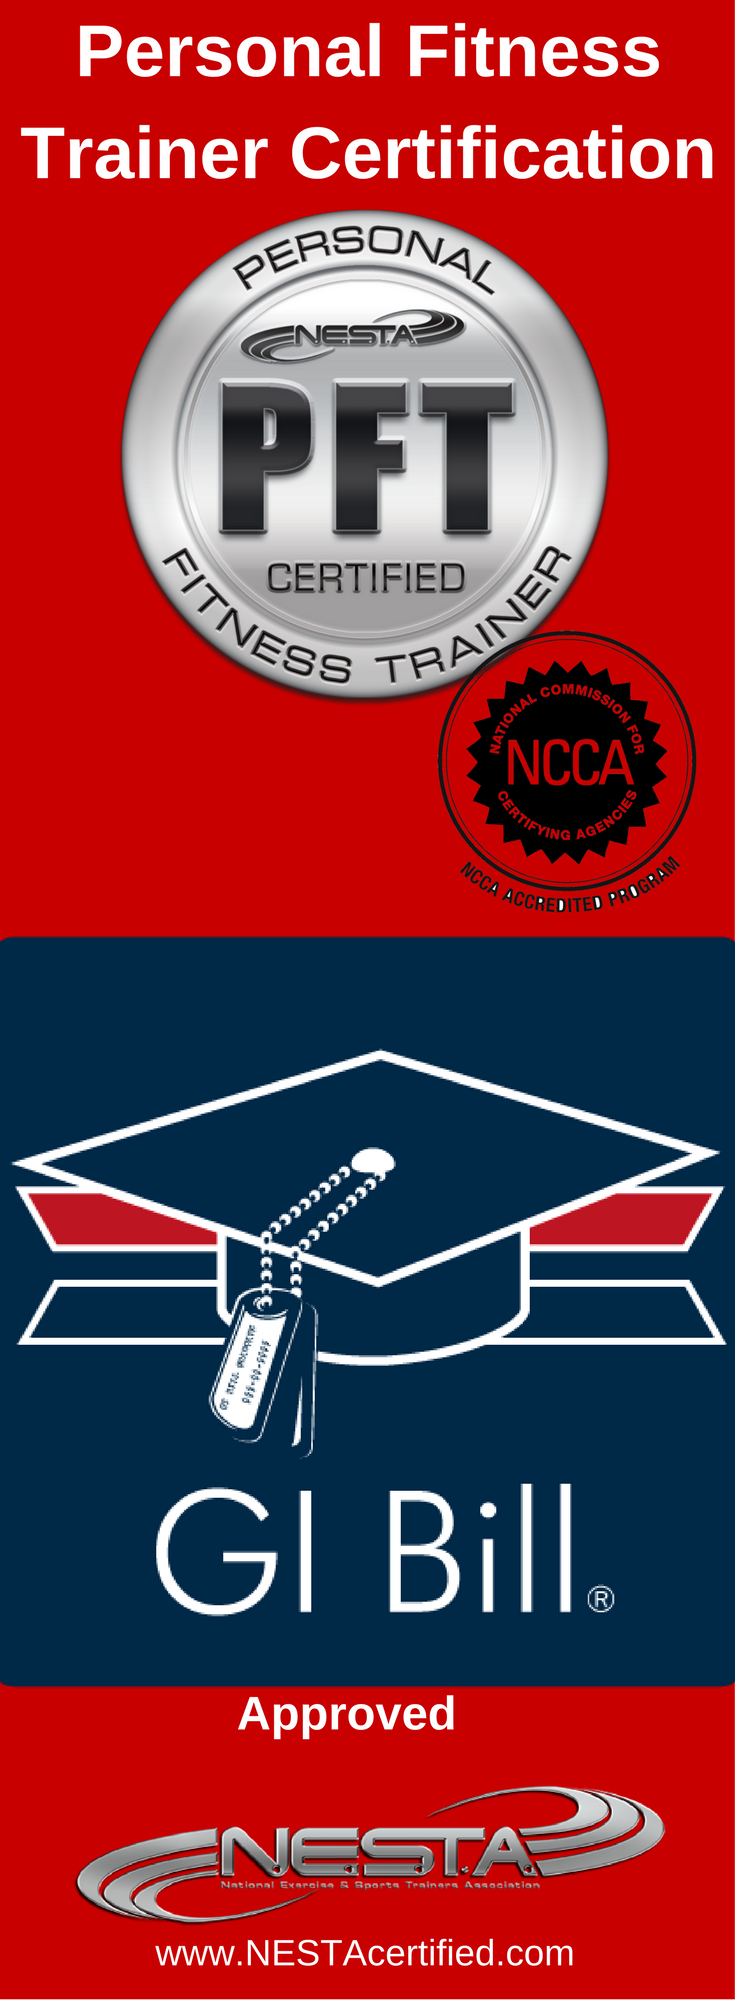 Personal trainer certification gi bill personal trainer and personal fitness trainer certification a gi bill approved online fitness education provider nesta and xflitez Choice Image